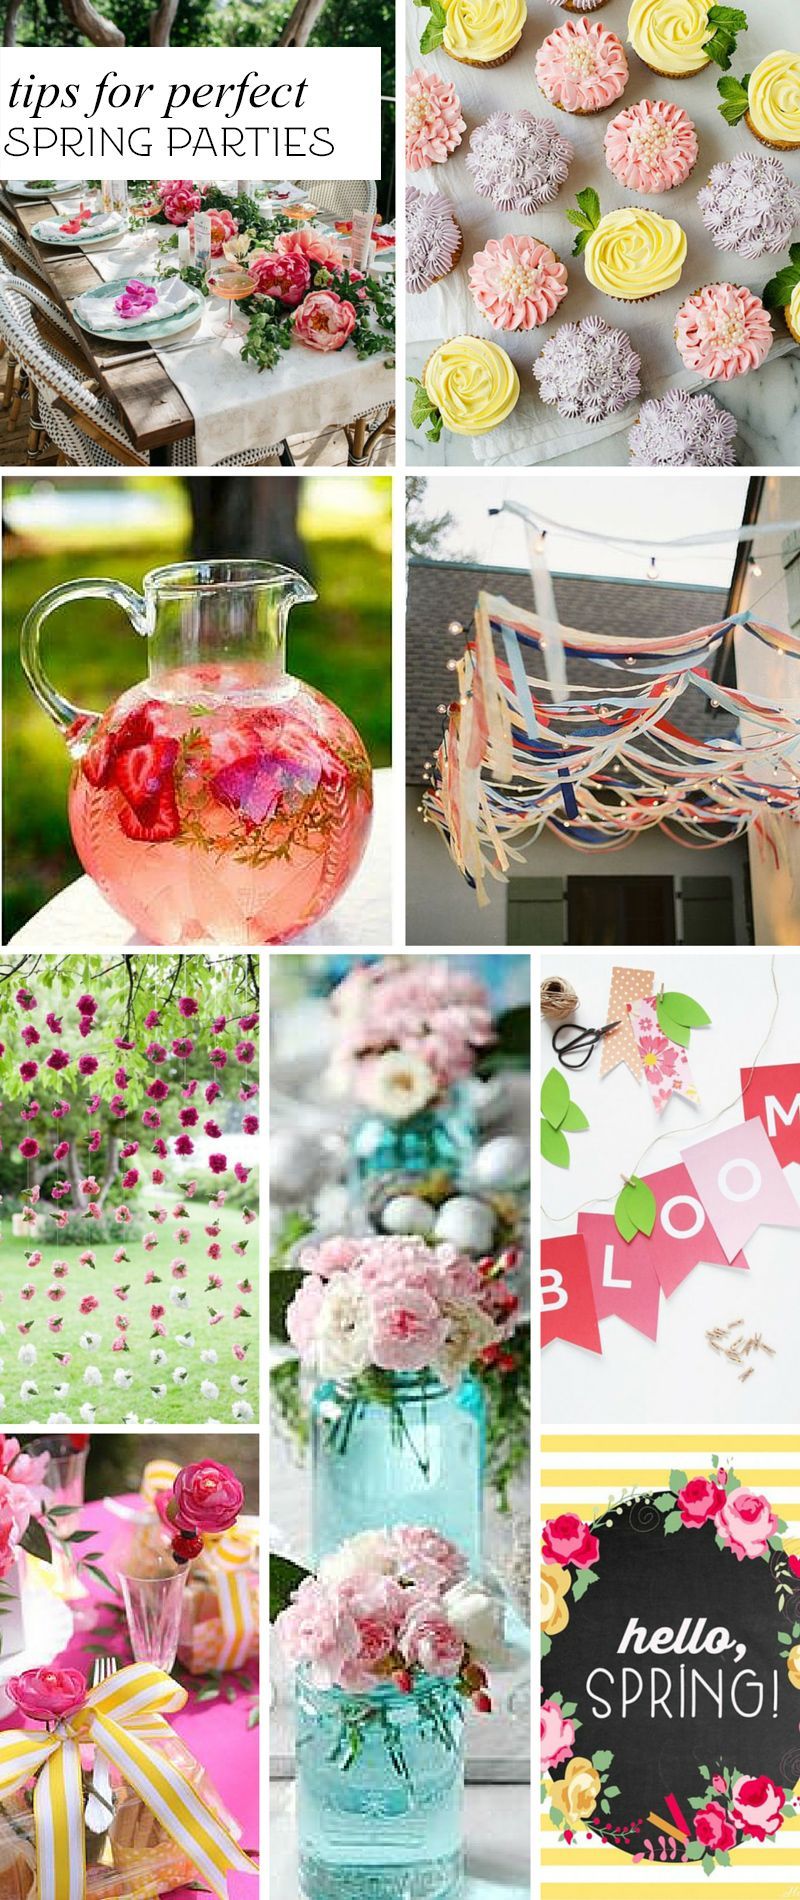 7 Tips for Fabulous Spring Parties